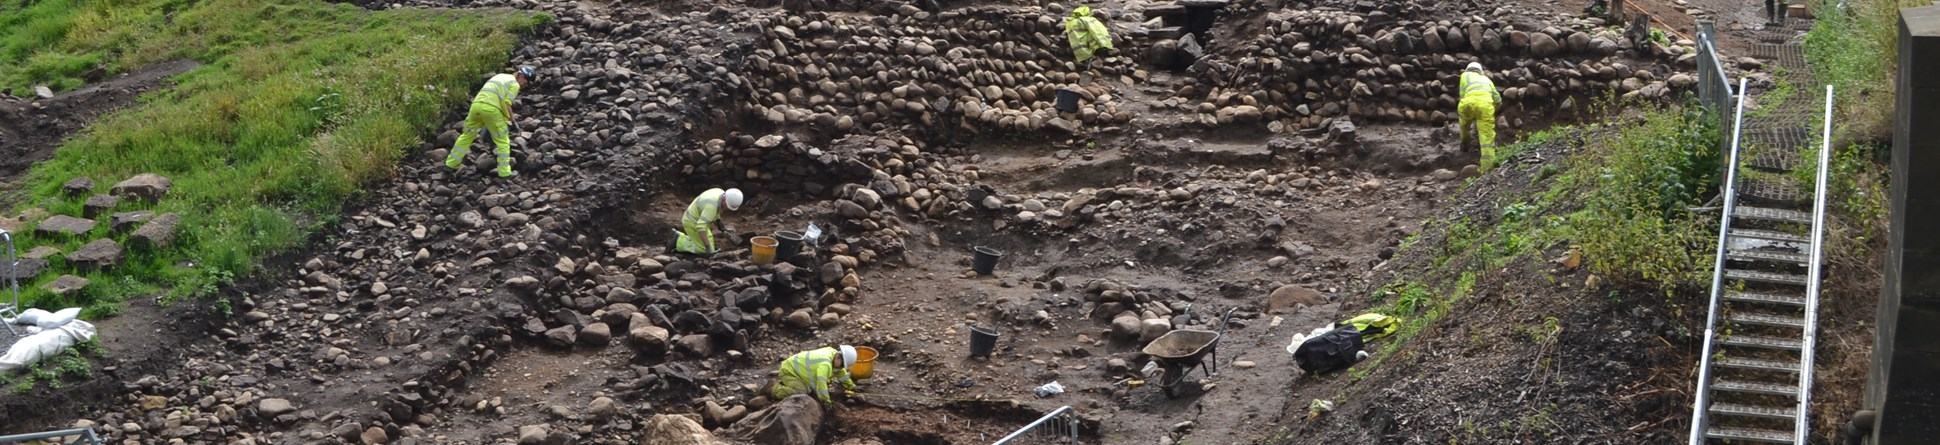 Image of archaeologists excavating Roman revetments, built to protect the river shore from erosion. This excavation was carried out in 2014, East of A1 on the south side of the River Swale near Catterick.